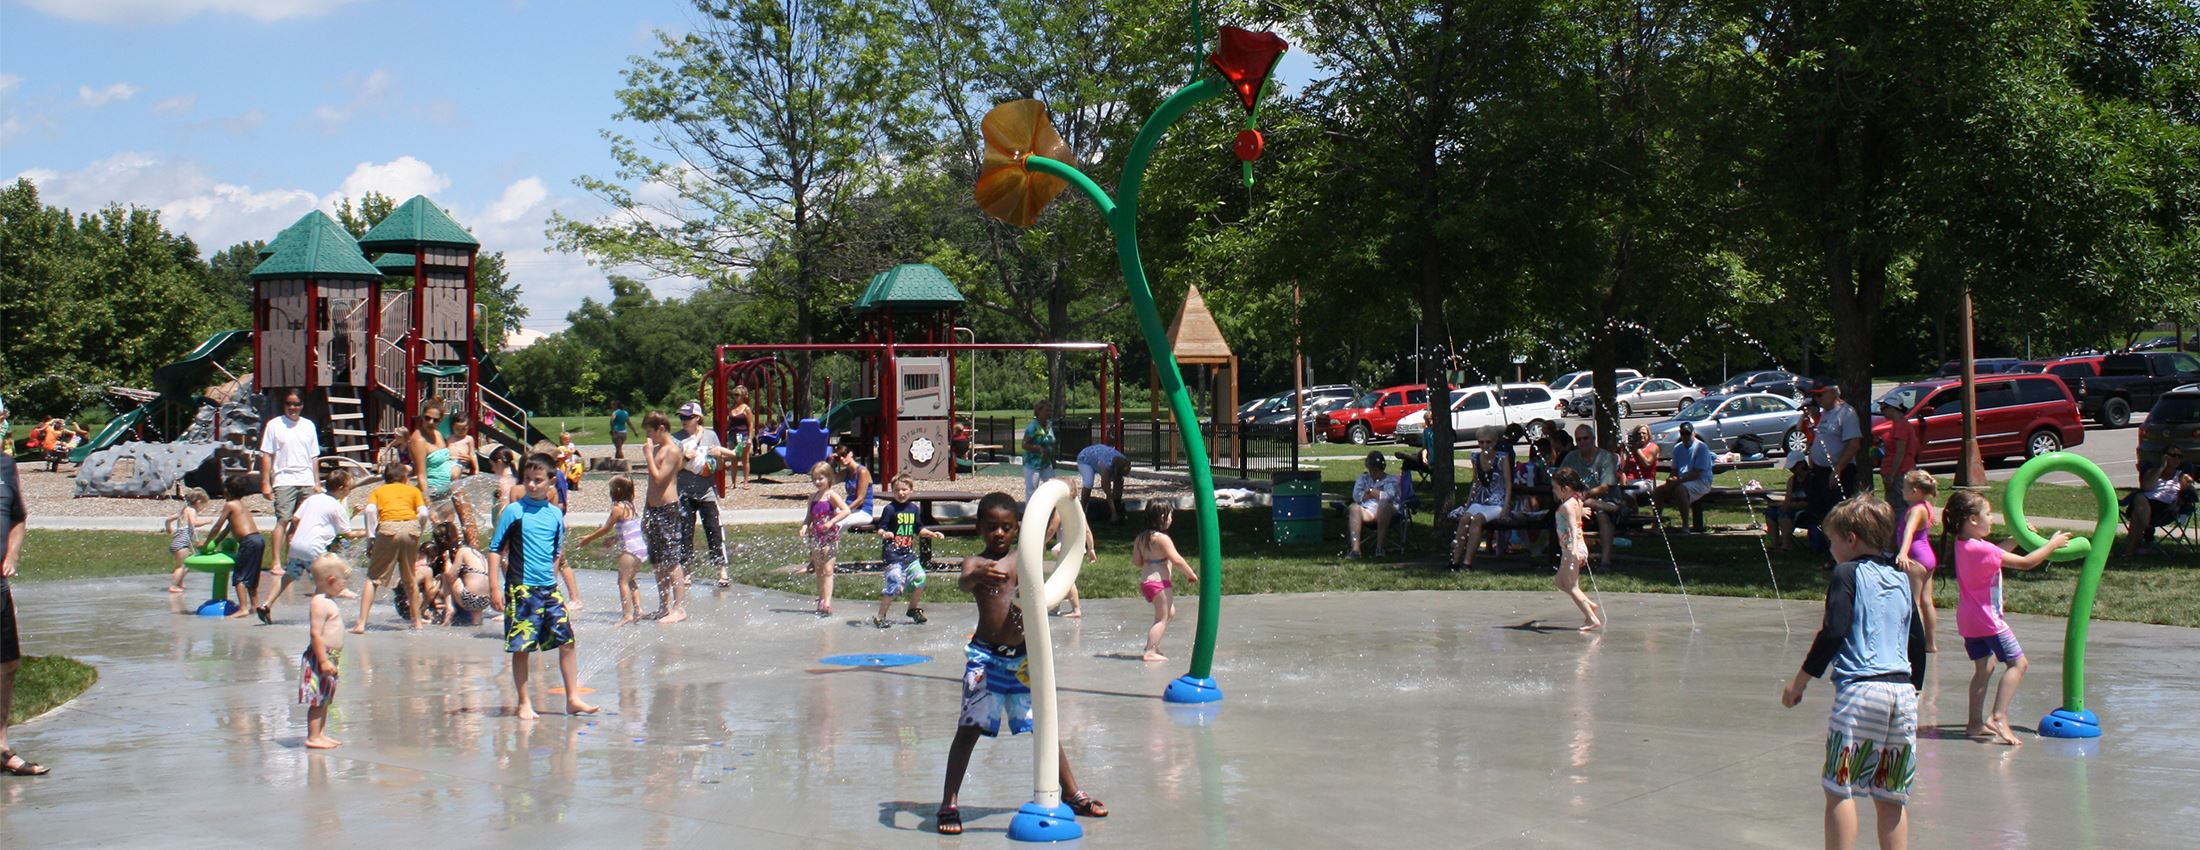 Kids play in a splash pad in front of a playground at Cliff Fen Park